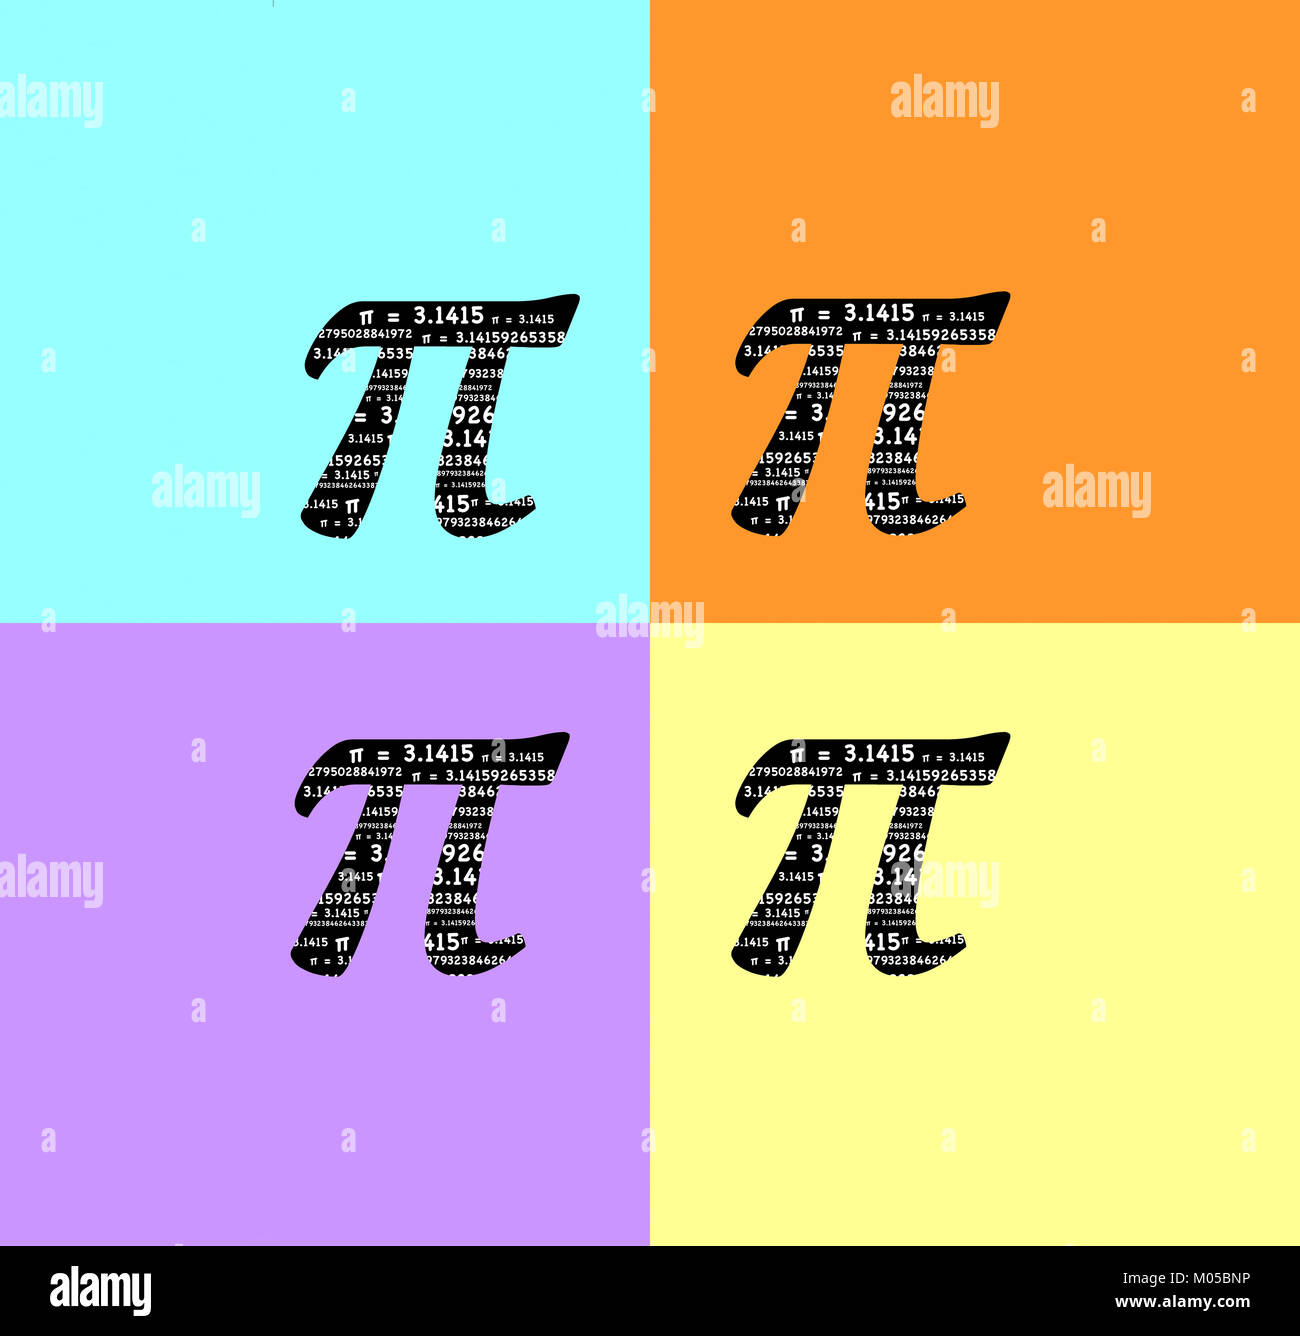 Pi Symbol With The Sum Formula 3141592653 Etc Inside The Symbol